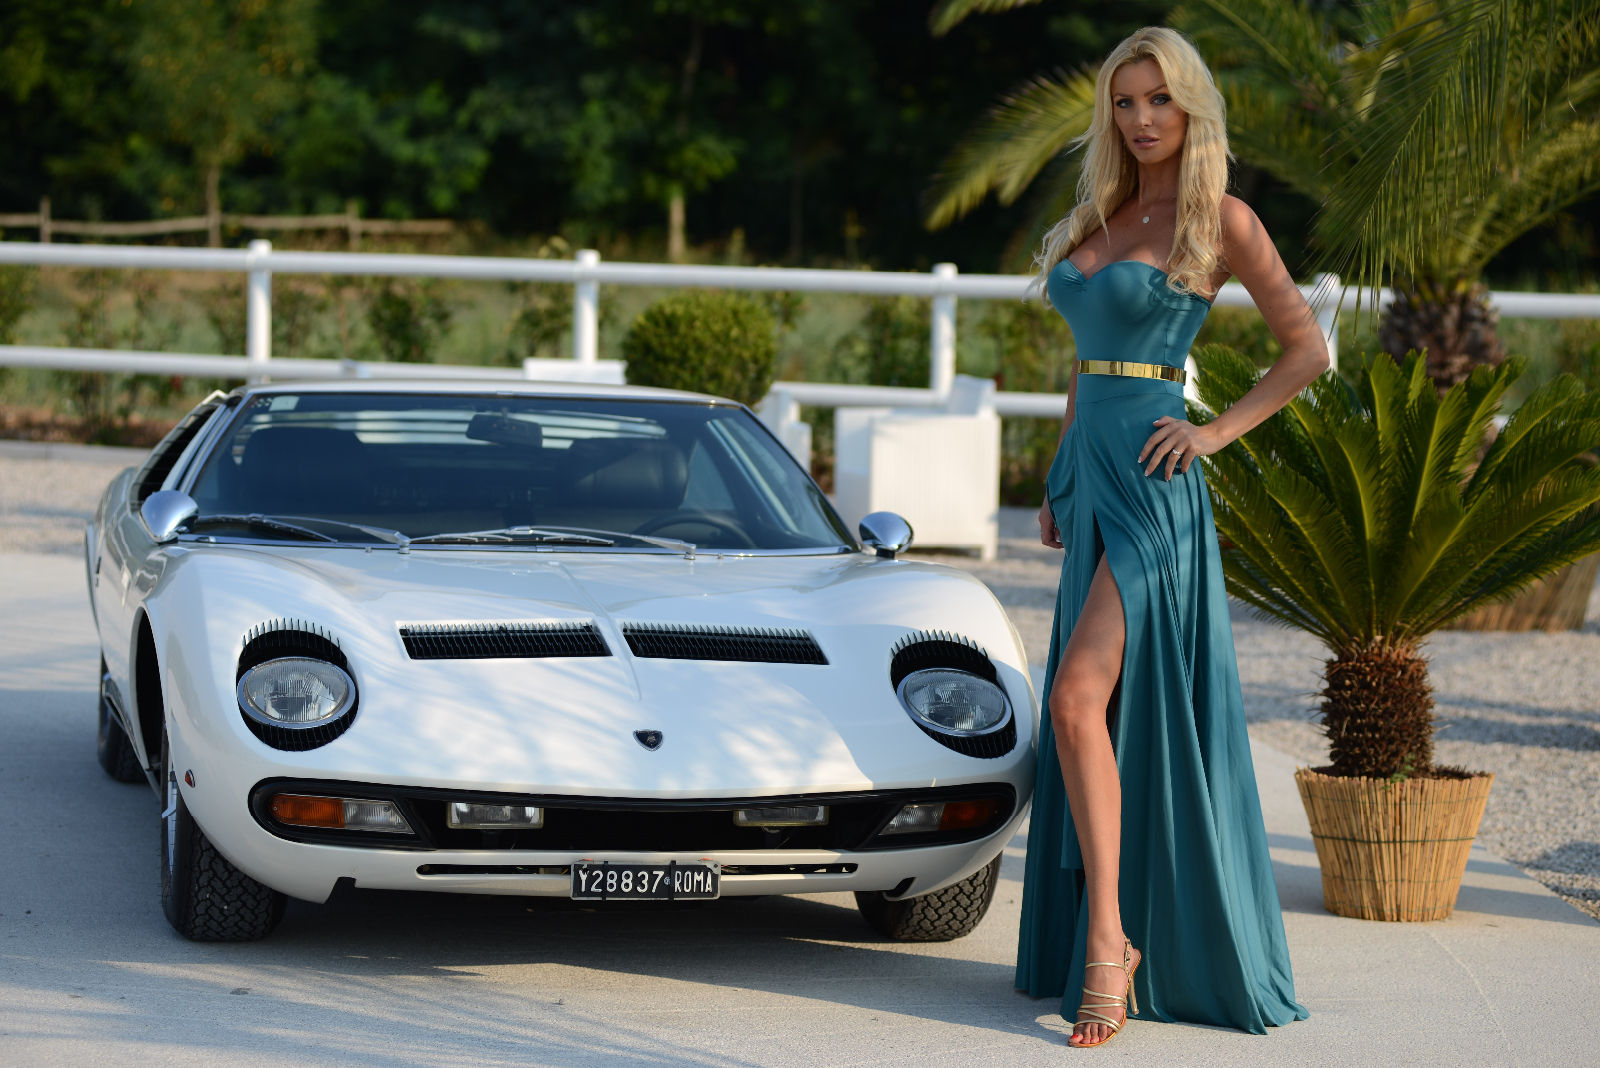 Lamborghini Miura P400s For Sale For 3 Million Euros Autoevolution